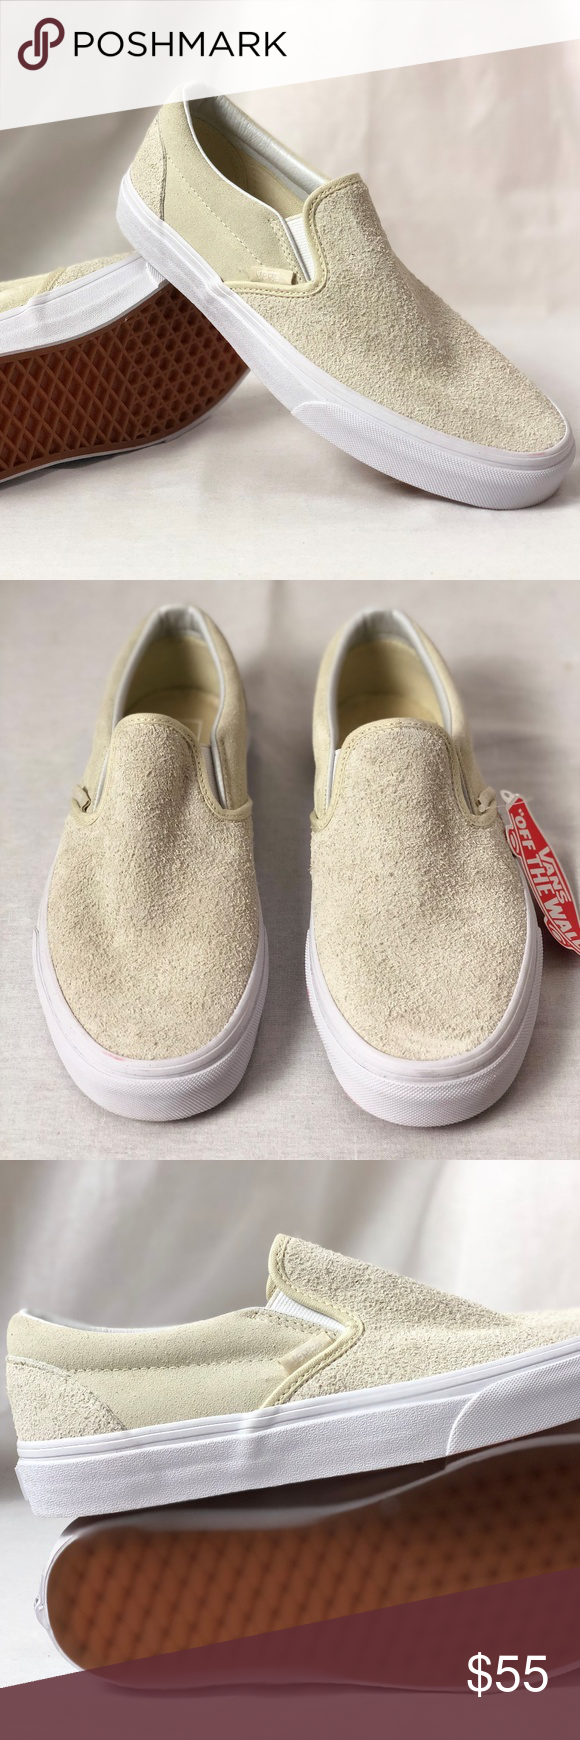 9a1d8fd539 Vans Classic Slip On White Hairy Suede Turtledove Vans Classic Slip On  White Hairy Suede Turtledove. Condition  New with box. Size  Women s 8.5